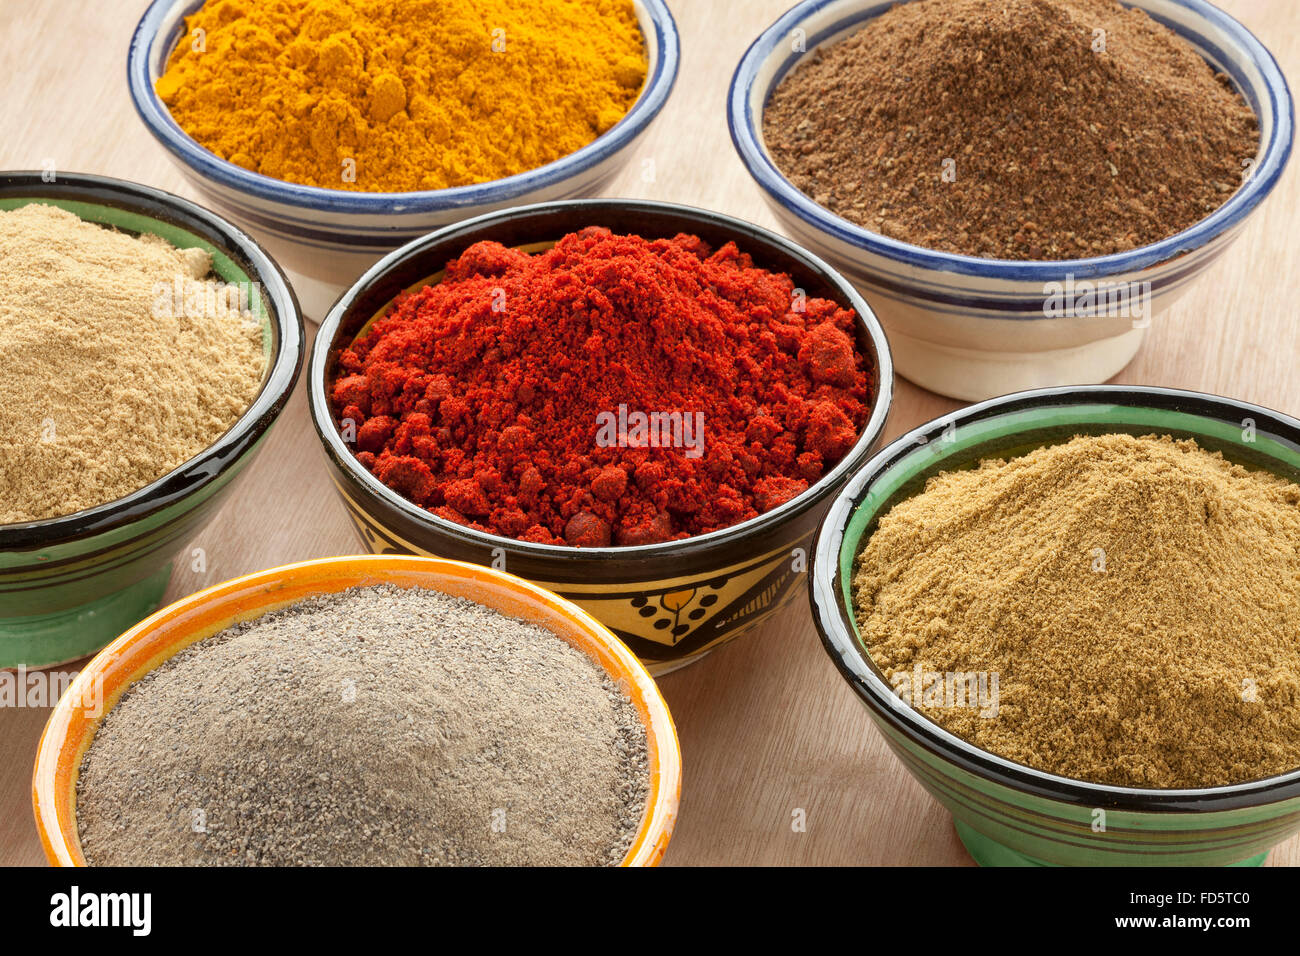 Moroccan bowls with different ground spices - Stock Image